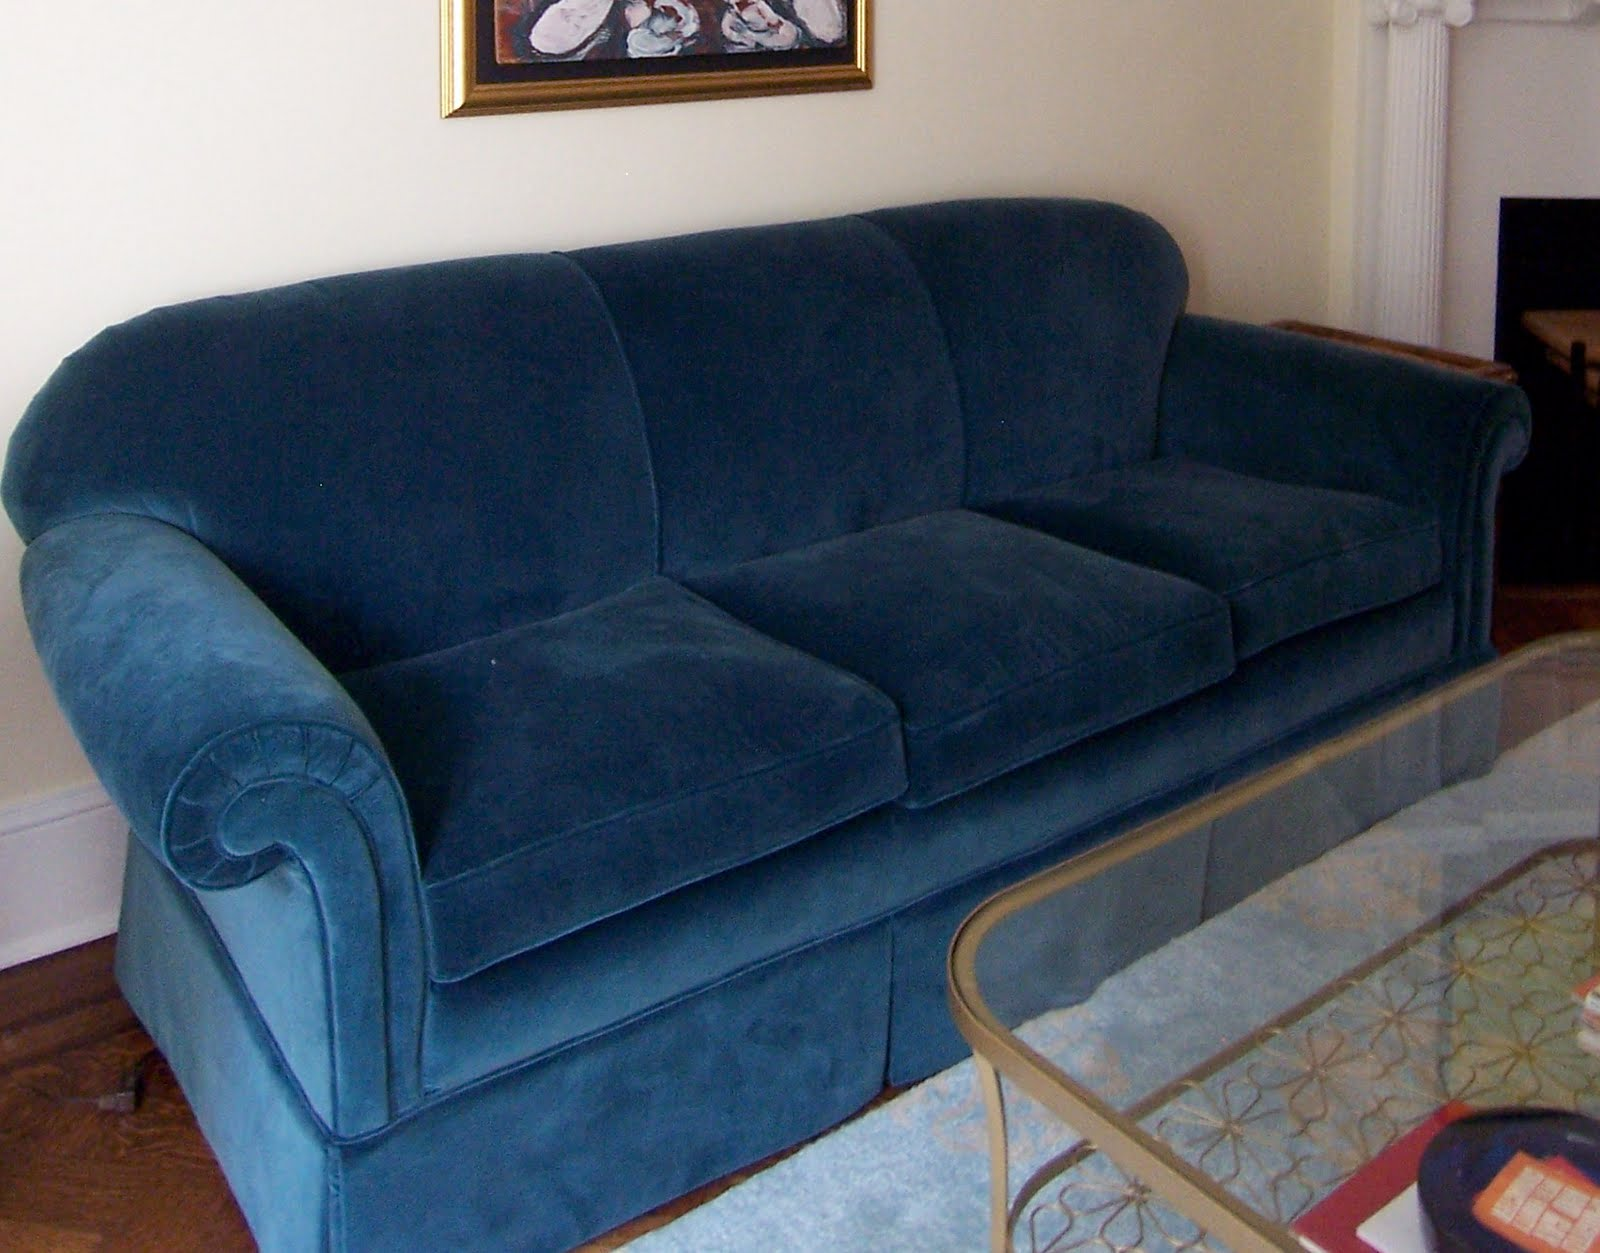 Sofa Reupholstering 2 Seater Sofas Under 100 Furniture Is Expensive Bossy Color Annie